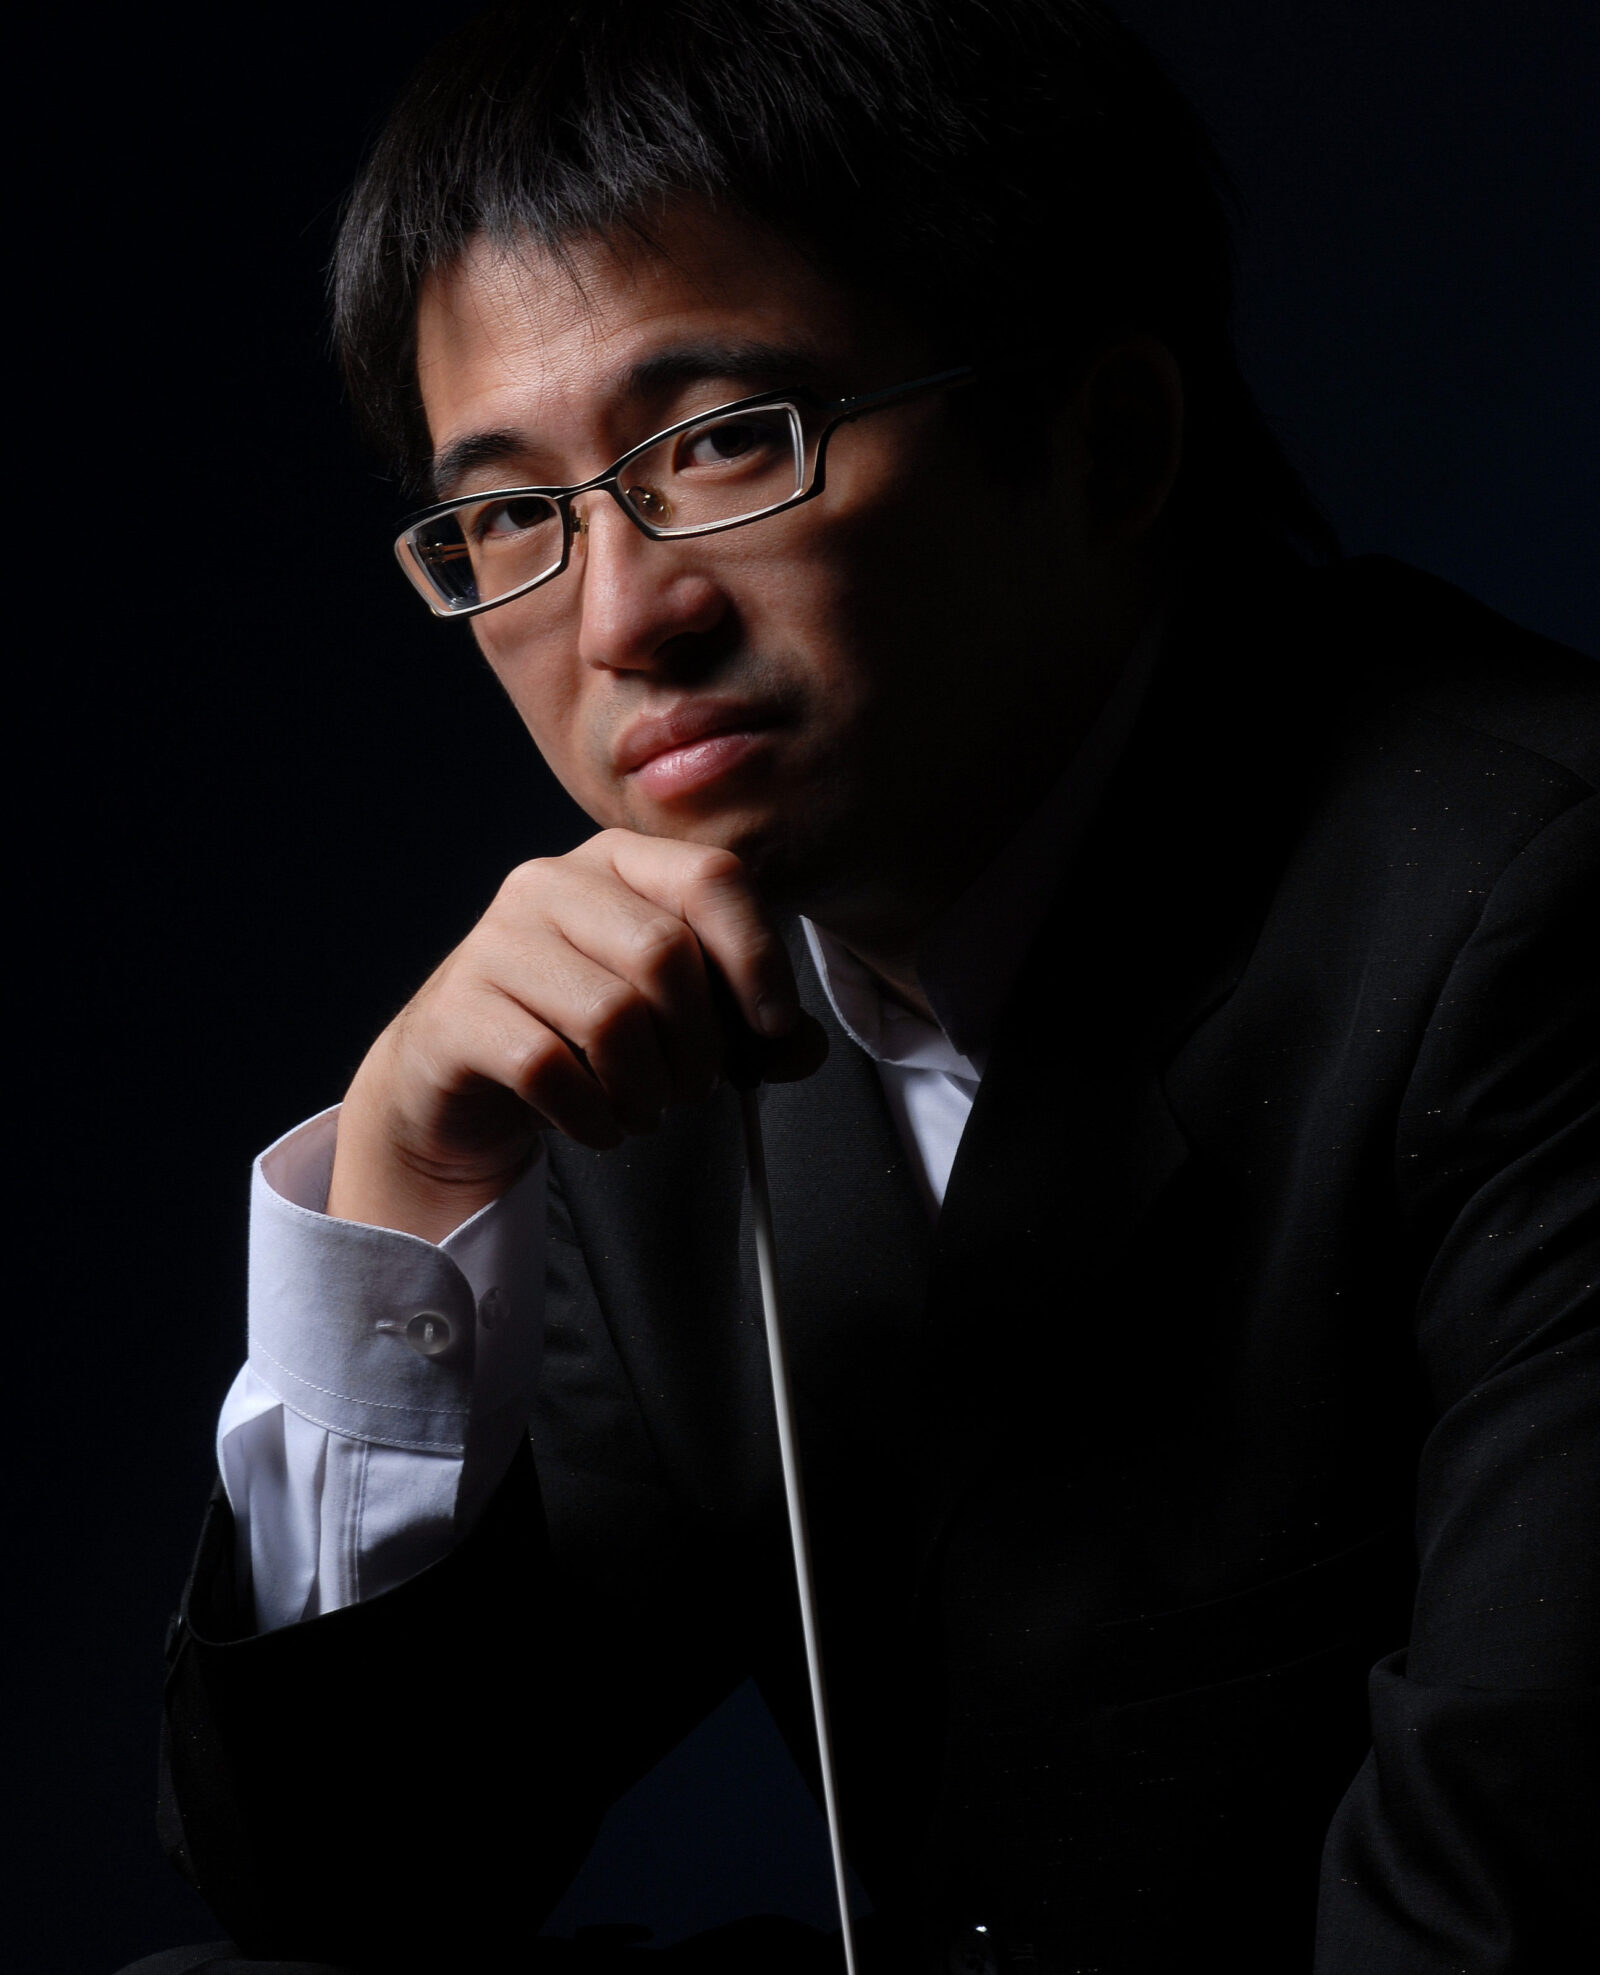 Introduction: Dr. Chih-Sheng Chen, Honorary Artistic Director and Conductor